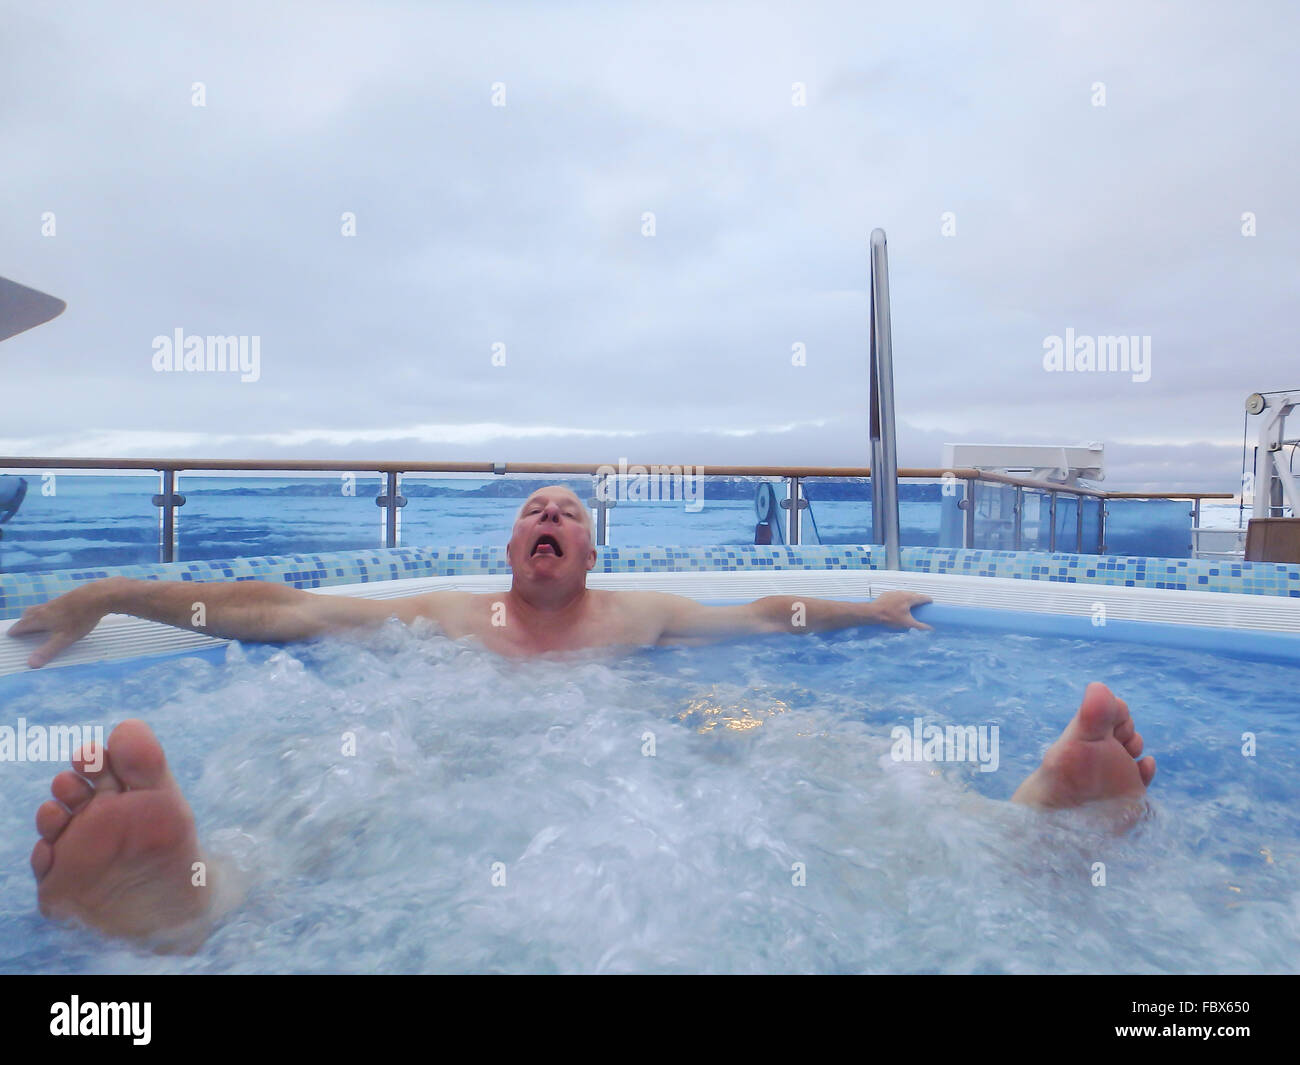 Man grimacing in hot tub on cruise ship in ice field of Antarctica. - Stock Image